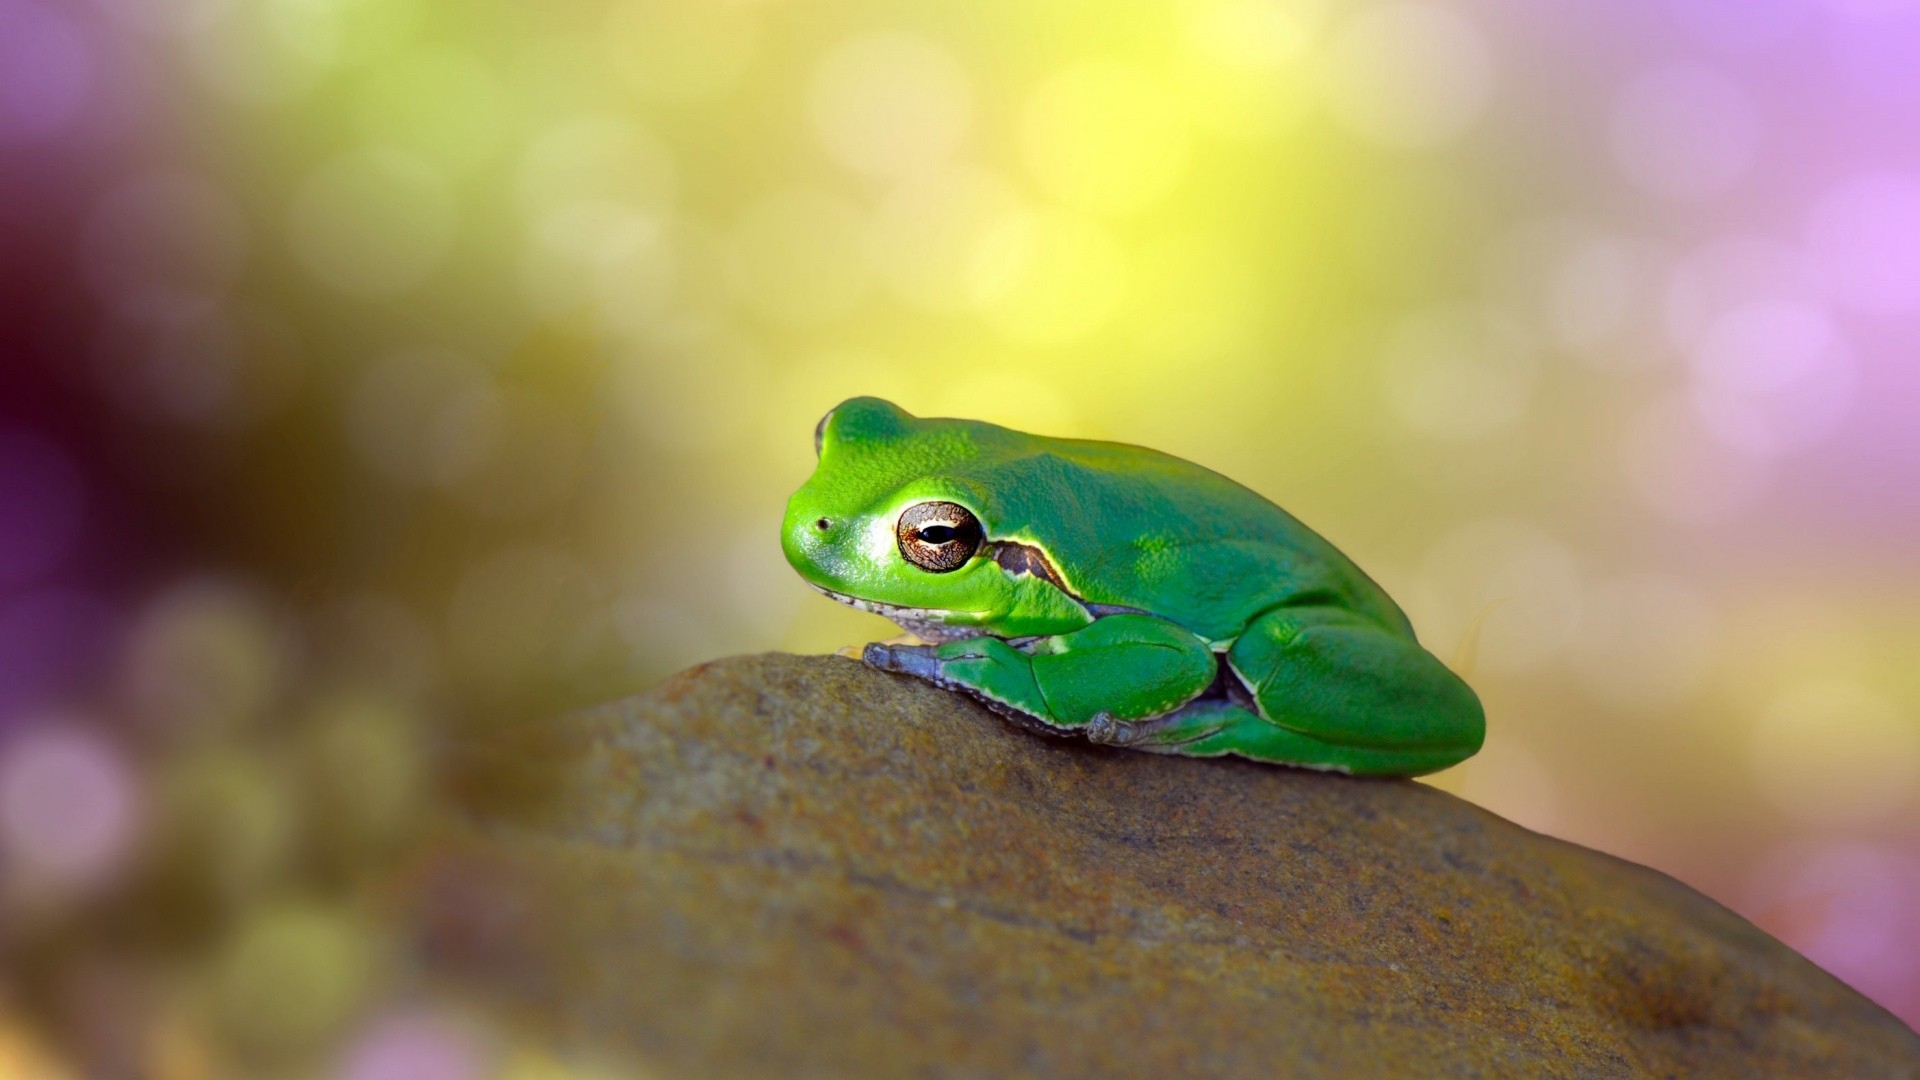 Frog Free Wallpaper and Background